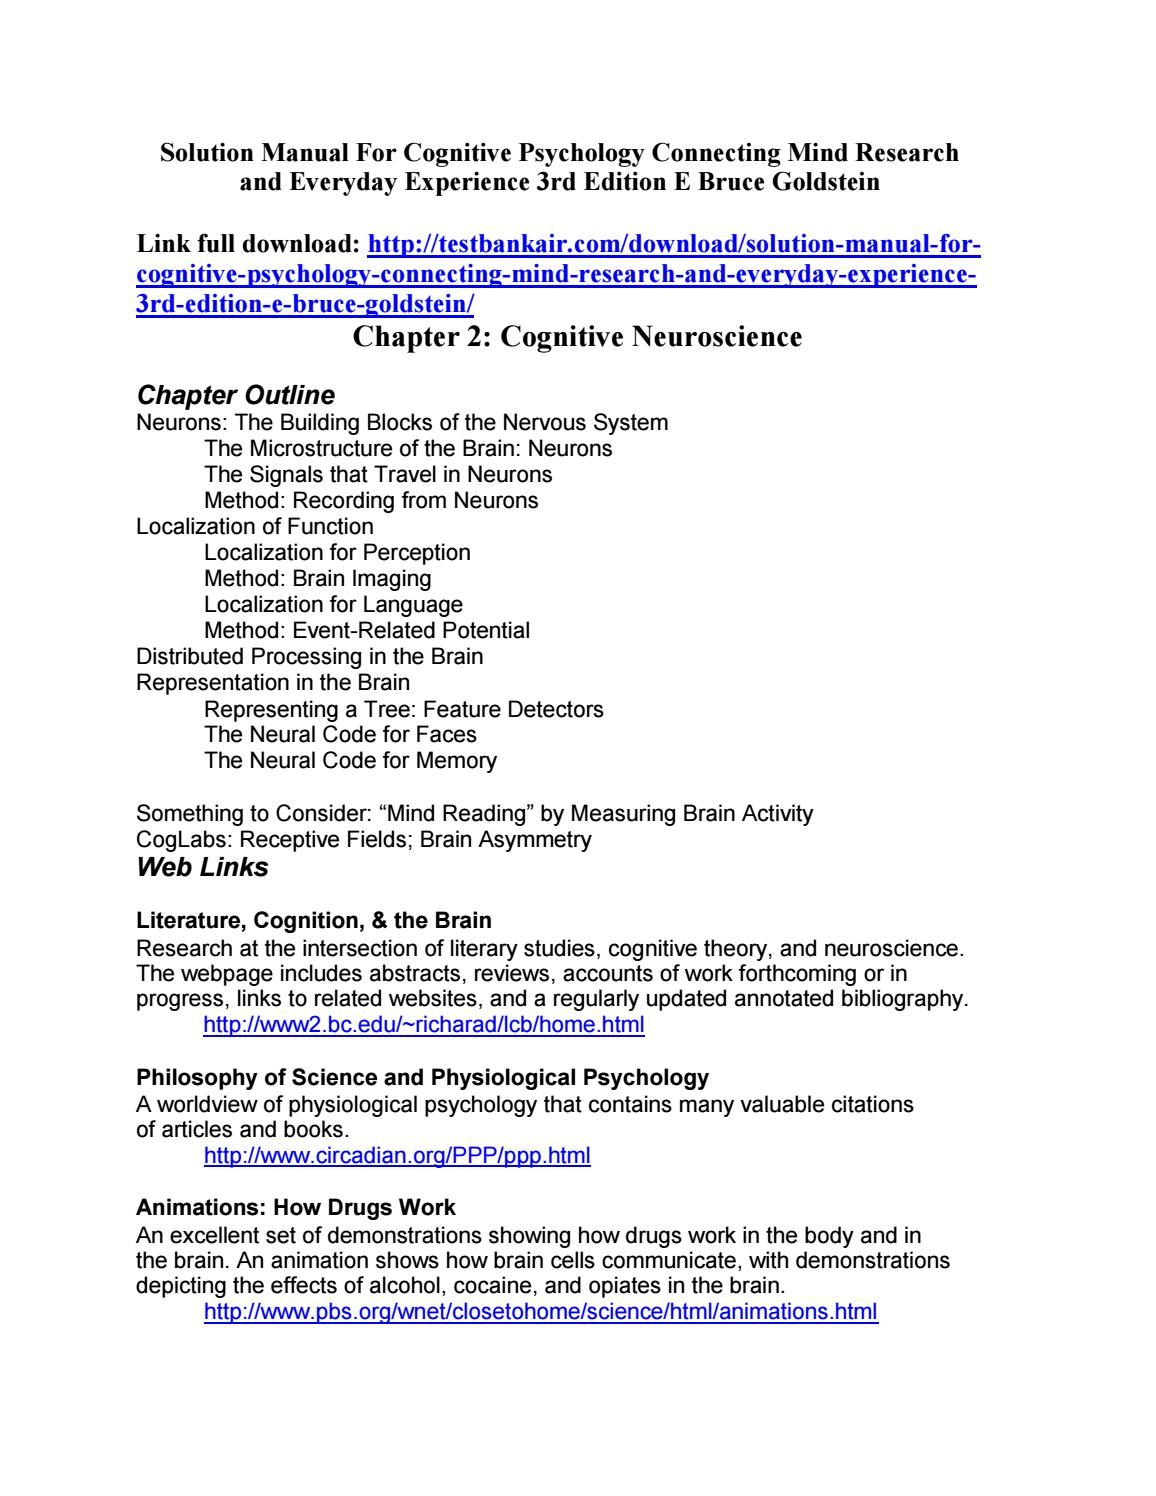 Solution Manual for Cognitive Psychology Connecting Mind Research and  Everyday Experience 3rd